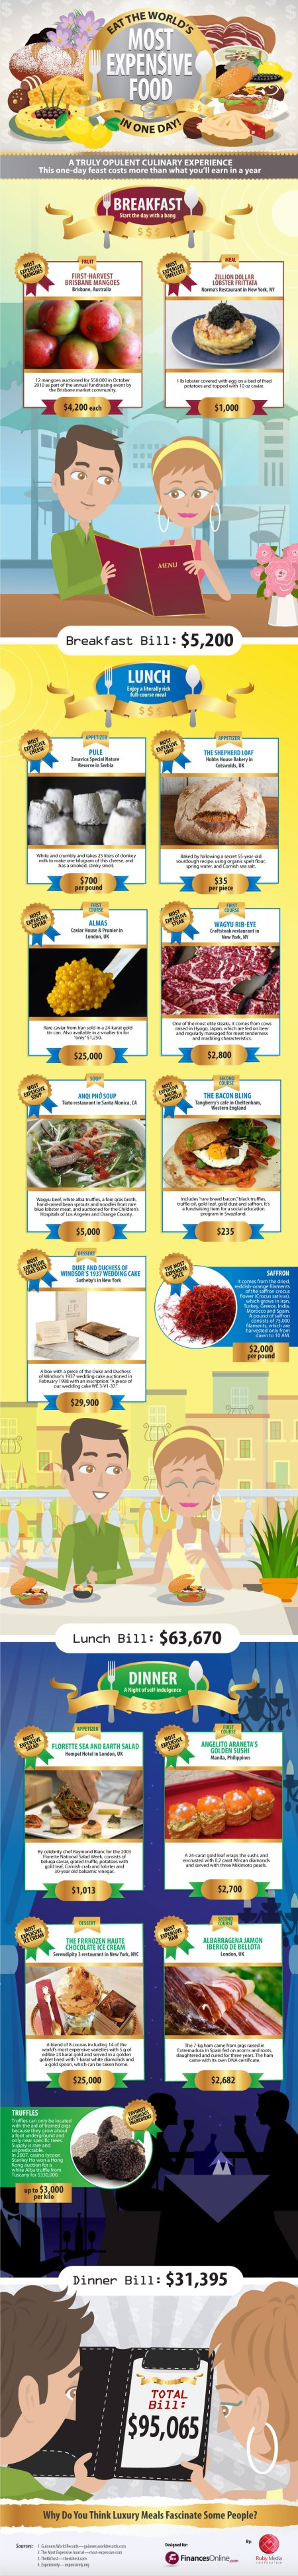 expensive-food-infographic